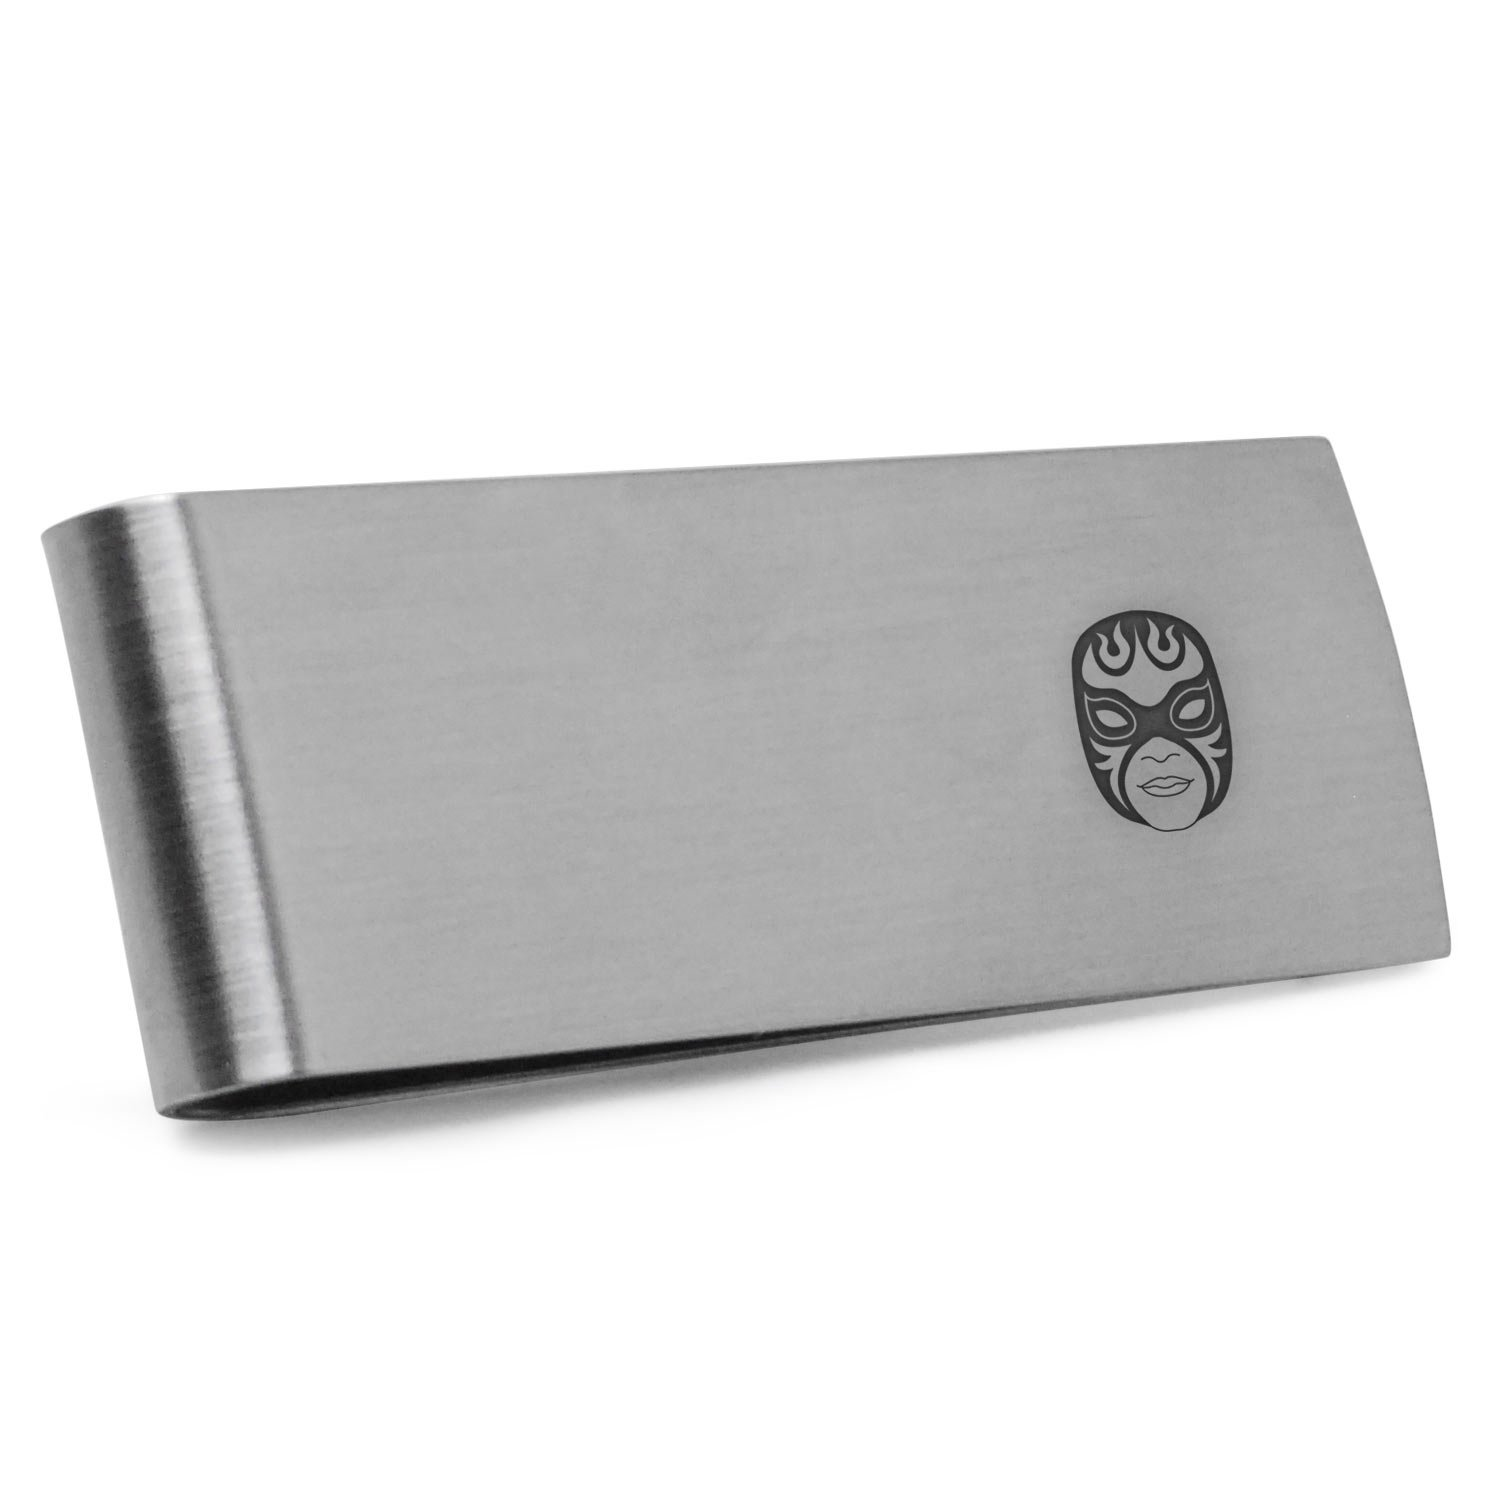 Wrestling Mask Money Clip | Stainless Steel Money Clip Laser Engraved In The USA. by Wooden Accessories Company